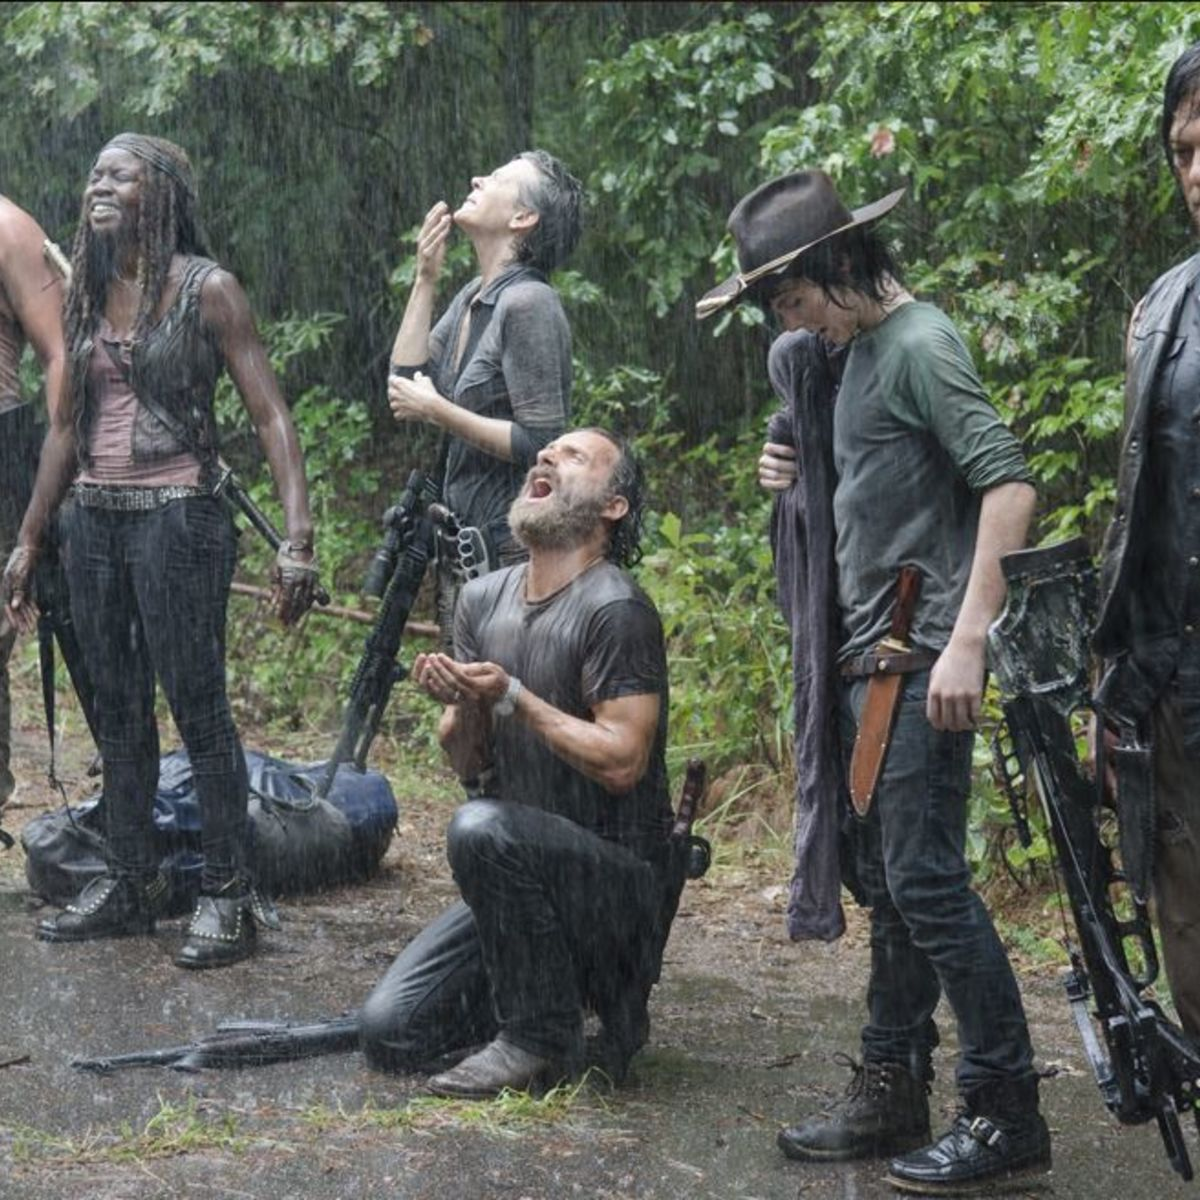 walking-dead-recap-17feb15-02.JPG